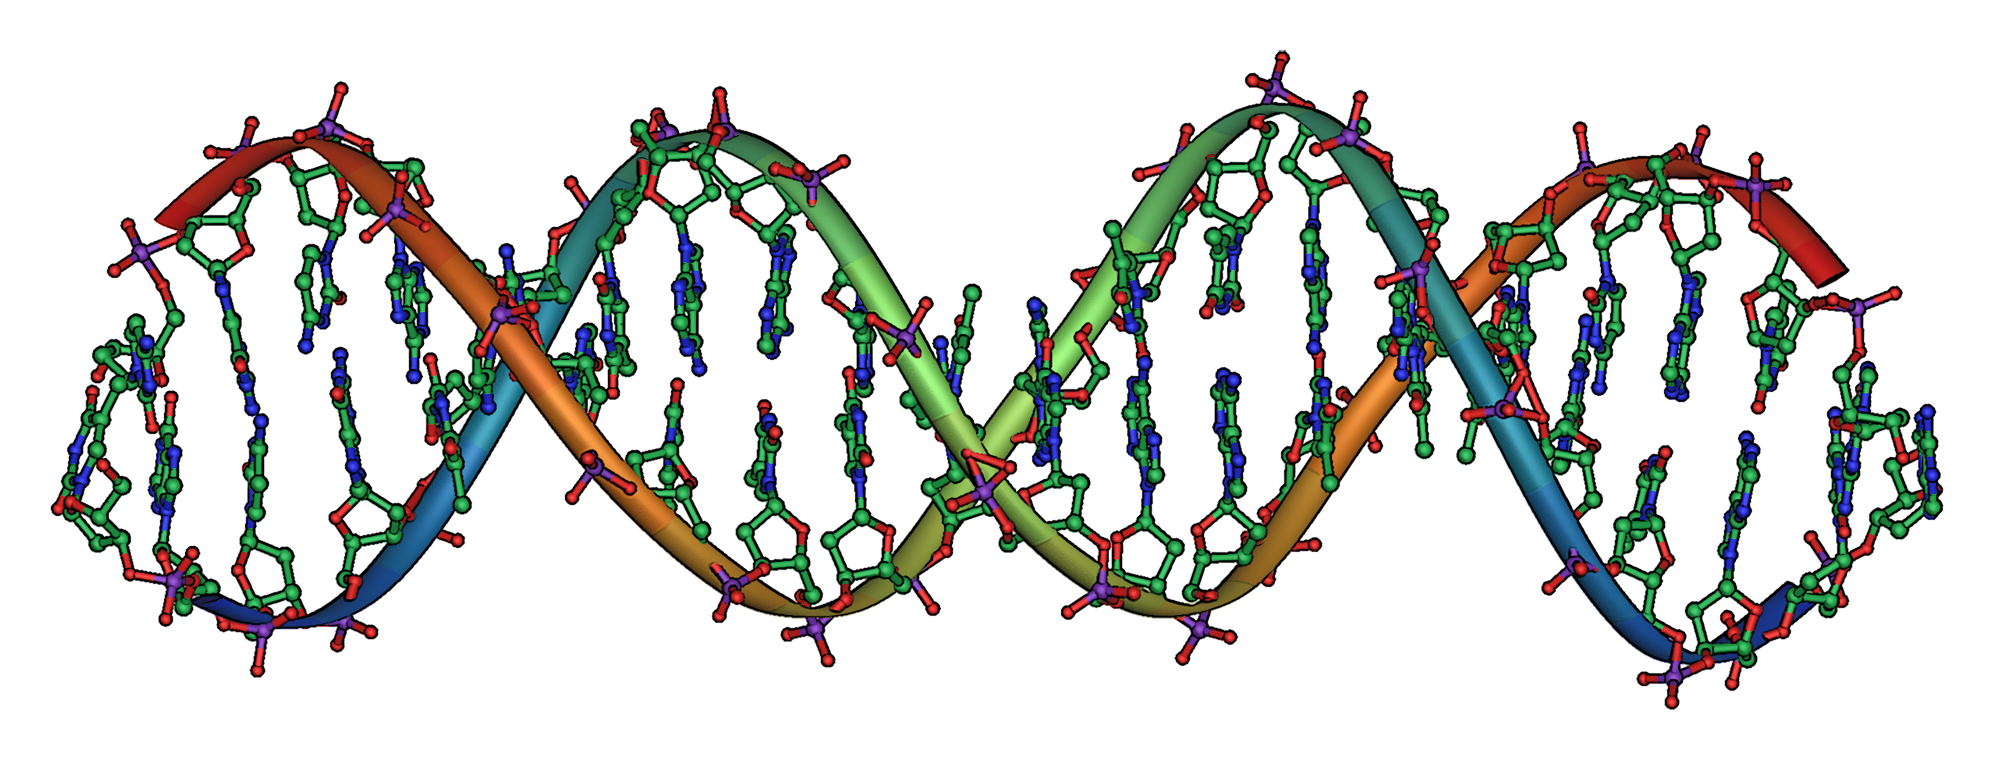 DNA_Overview_landscape_orientation